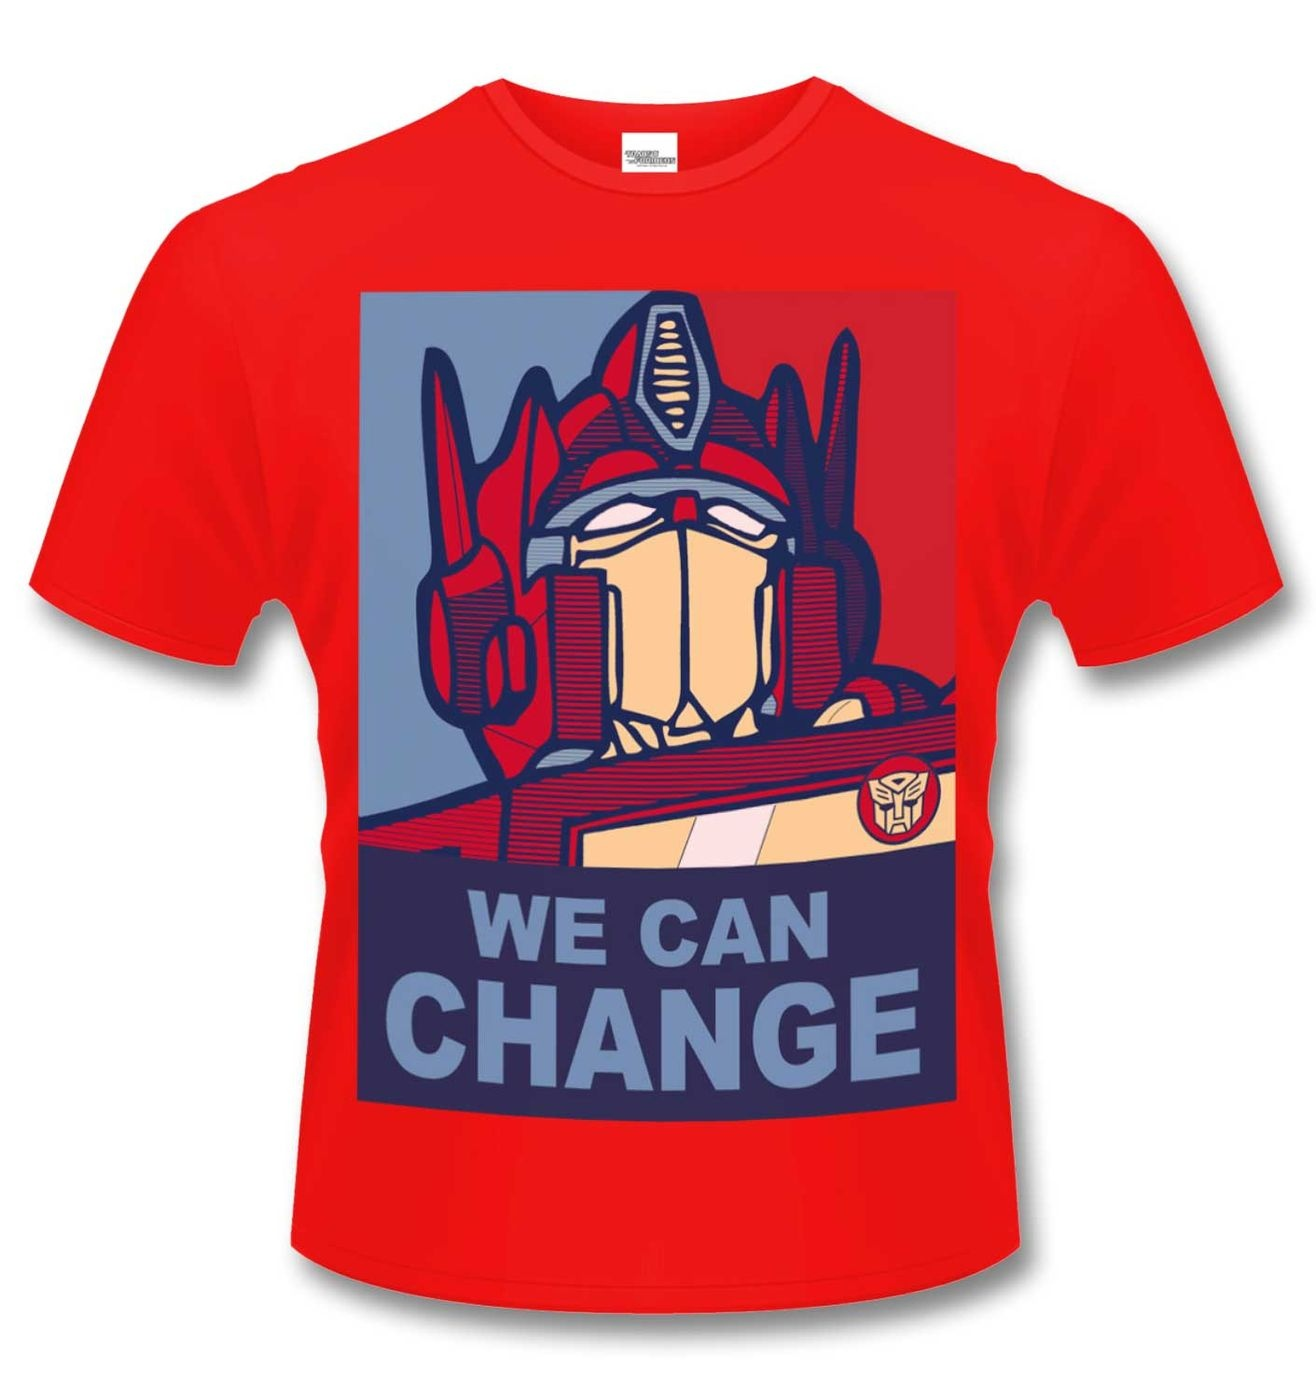 Official Transformers We Can Change t-shirt